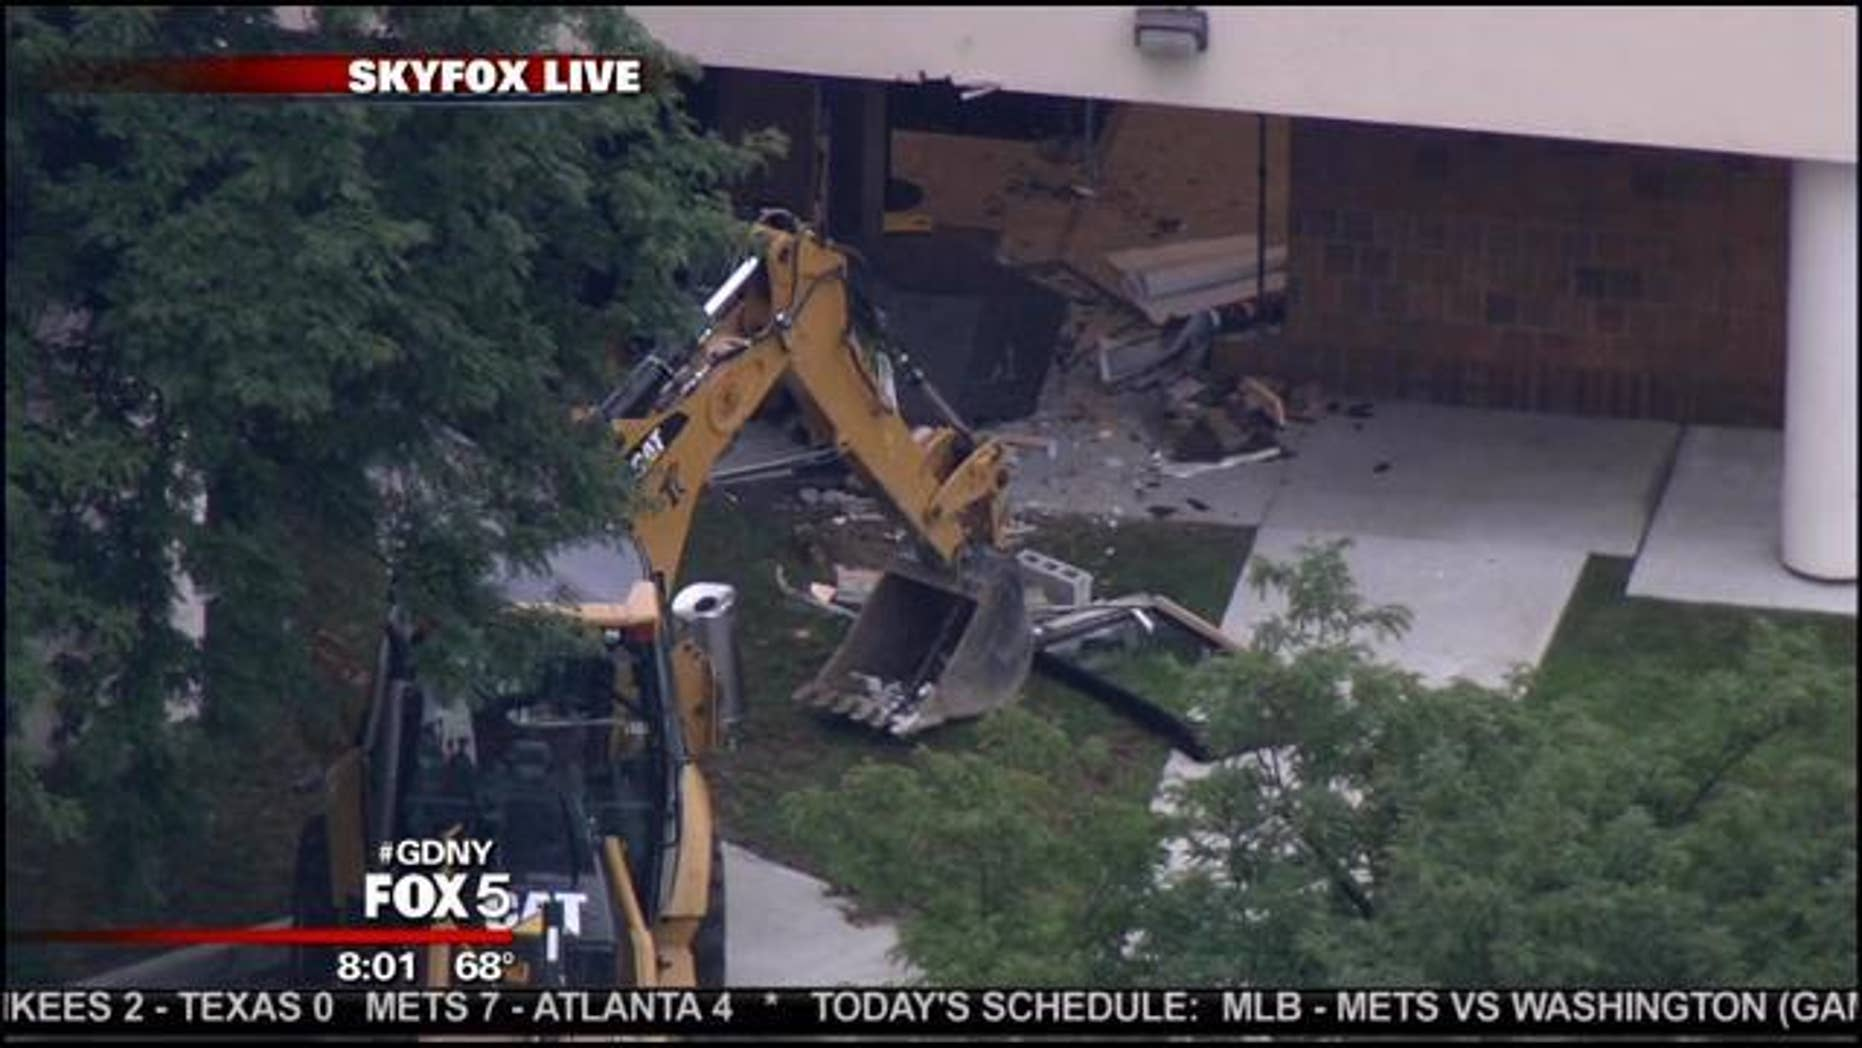 July 26, 2013: This photo shows the backhoe and damage left by a suspected thief at a Queens bank.